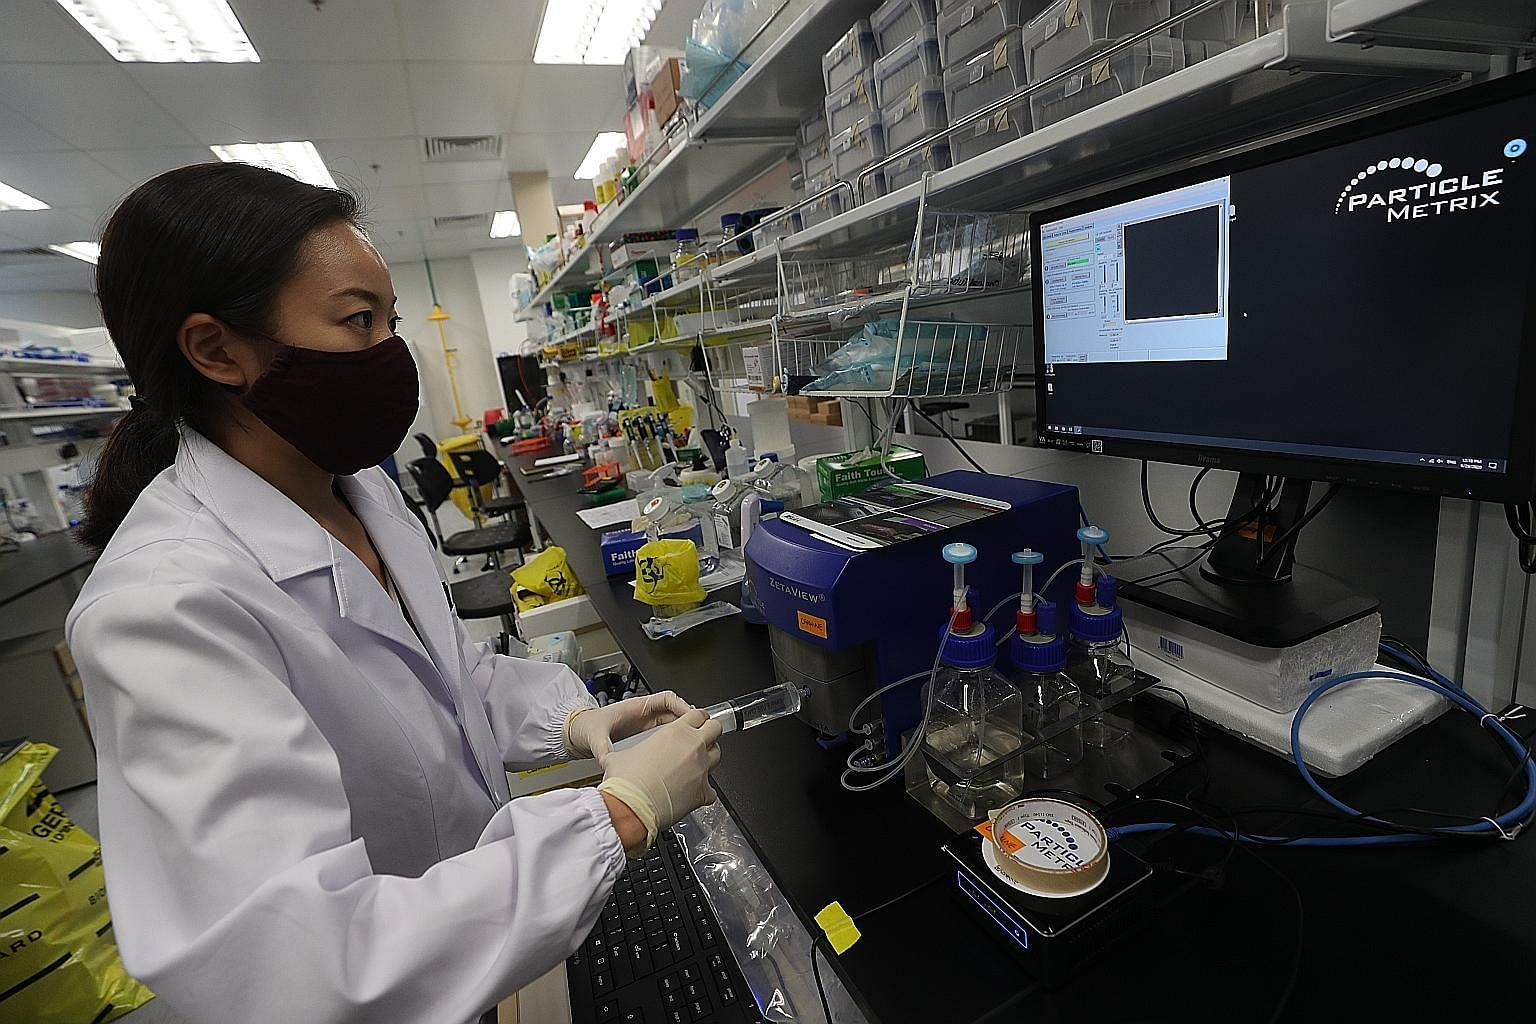 Carmine Therapeutics scientist Yumi Kawamura operating a device used to analyse extracellular vesicles, particles that are released by red blood cells. Carmine developed a technology that uses extracellular vesicles to deliver genes to parts of the b